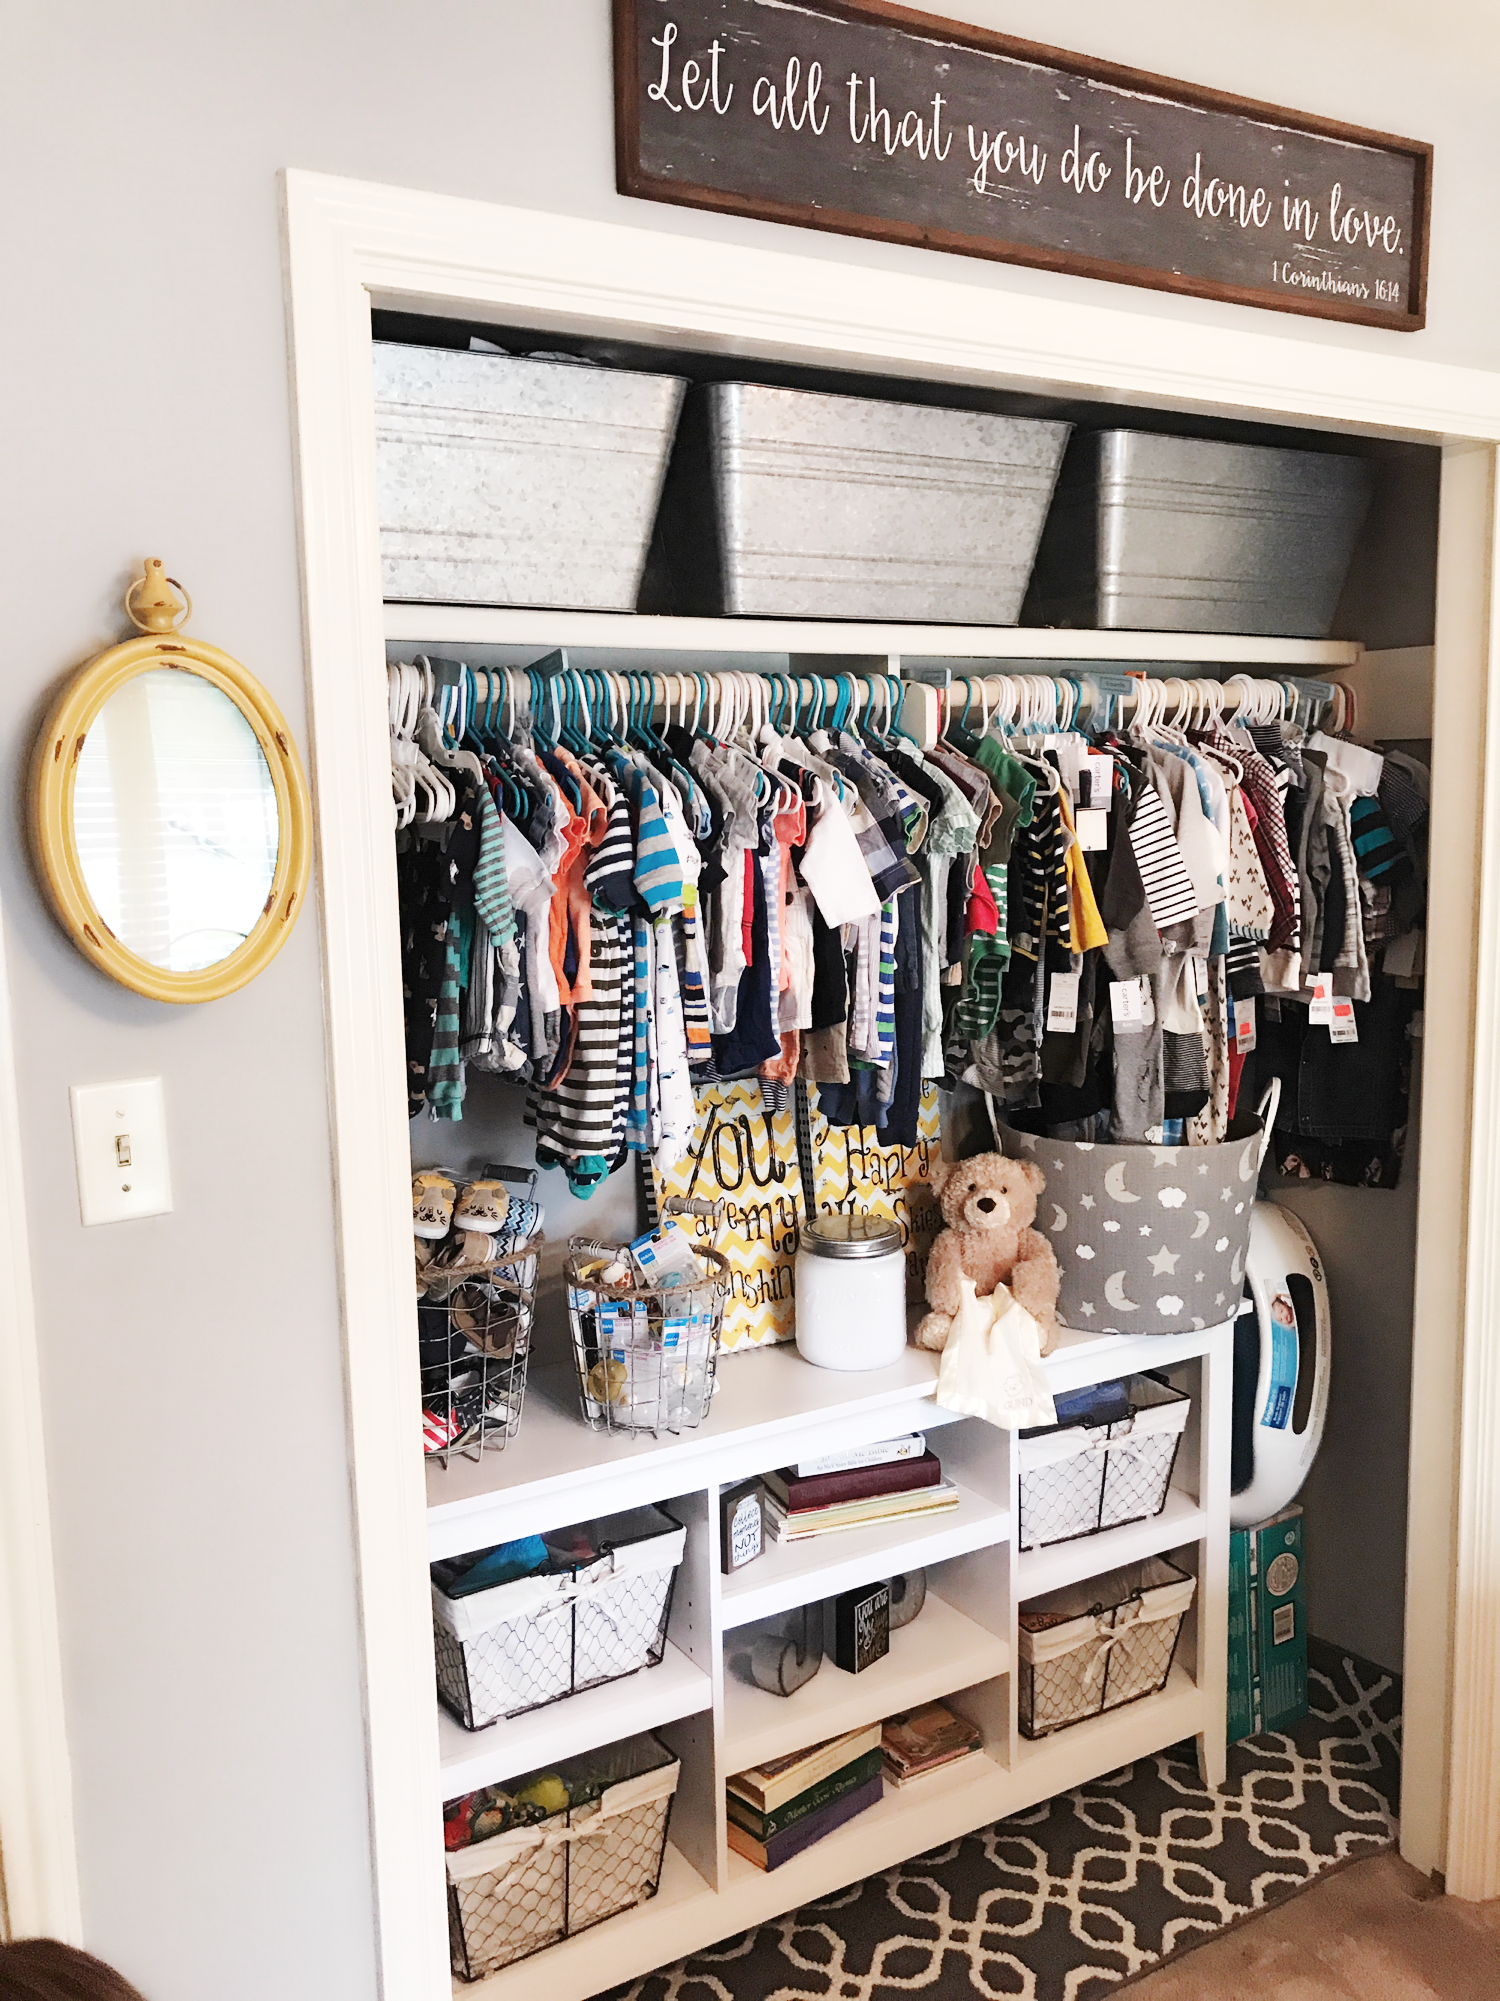 Nursery Closet Organization. This Bookshelf And The Bins Are AMAZING For  Orginizing A Little Ones Closet. Nursery Spare Room Combo Designed By  Jennifer Boyd ...